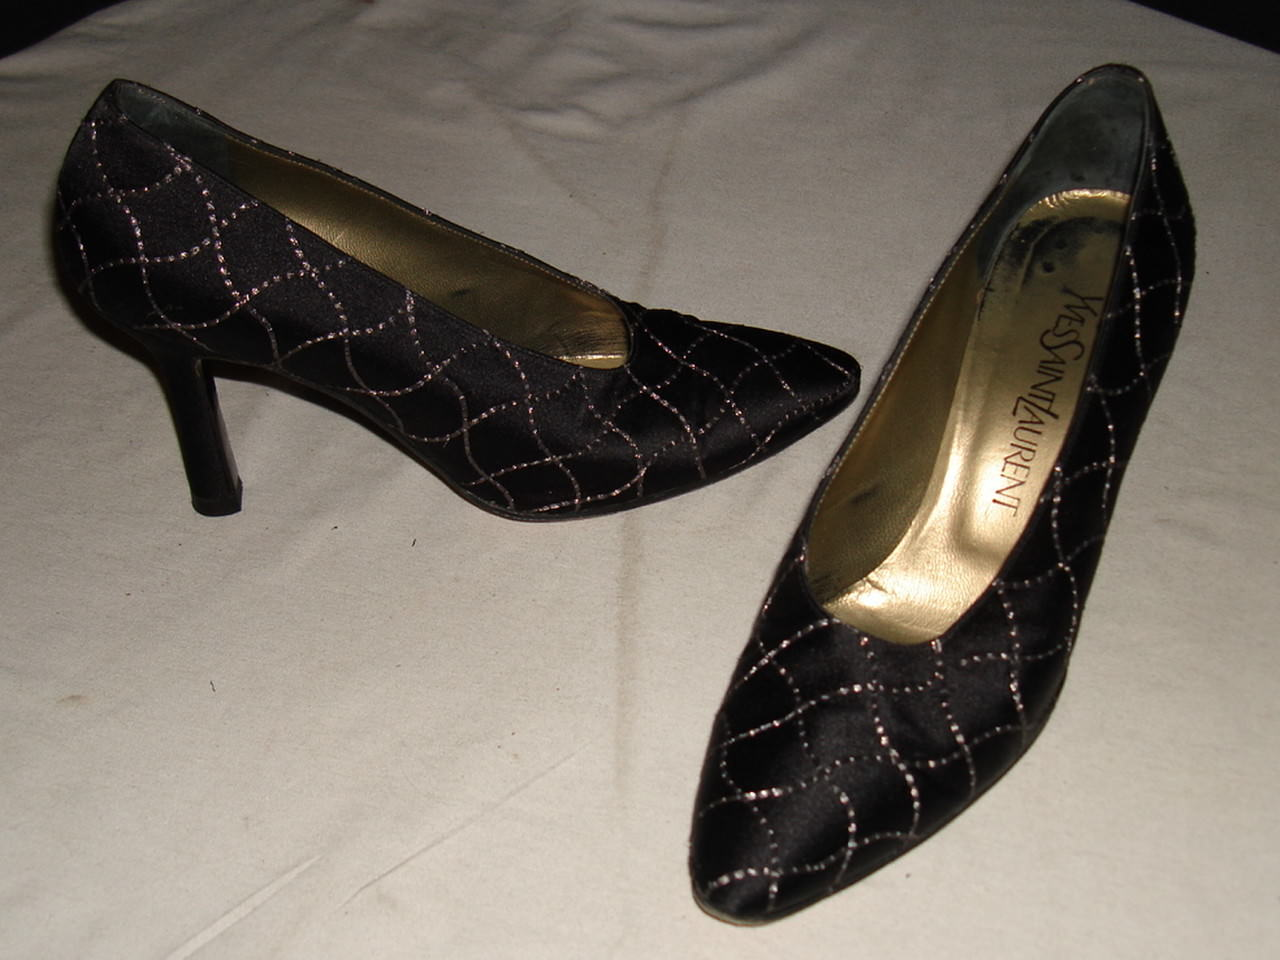 MADE IN ITALY YVES SAINT LAURENT BALCK/ SILVER LEATHER/SILK PUMPS SZ. 7M